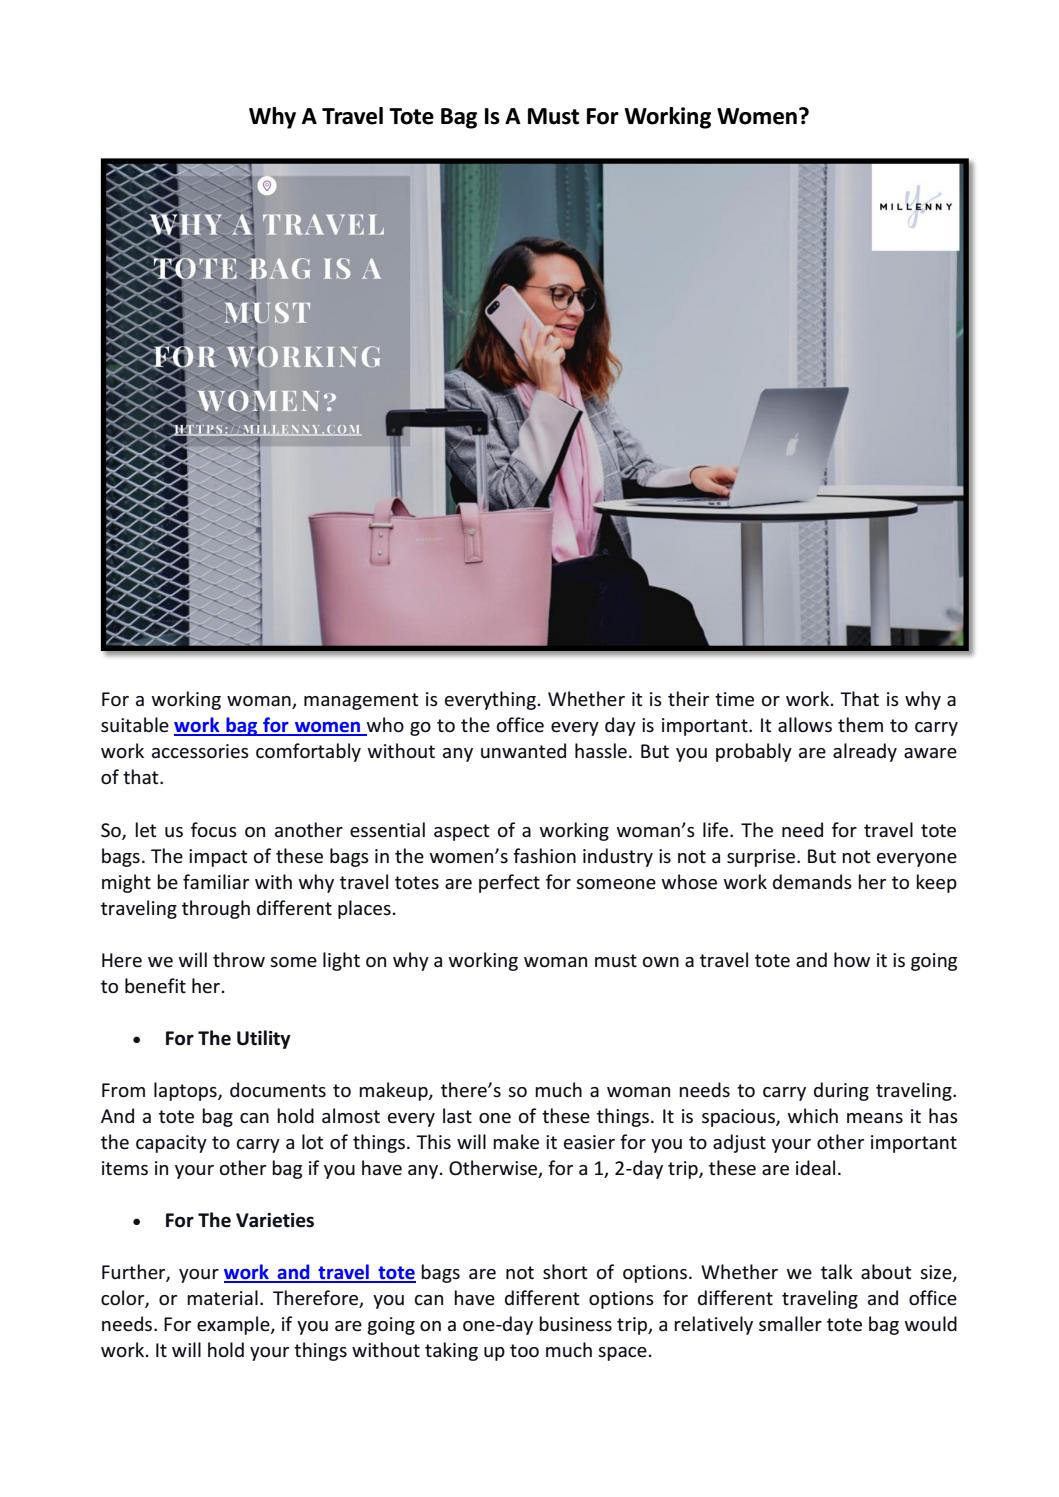 Why A Travel Tote Bag Is A Must For Working Women By Millenny1 Issuu